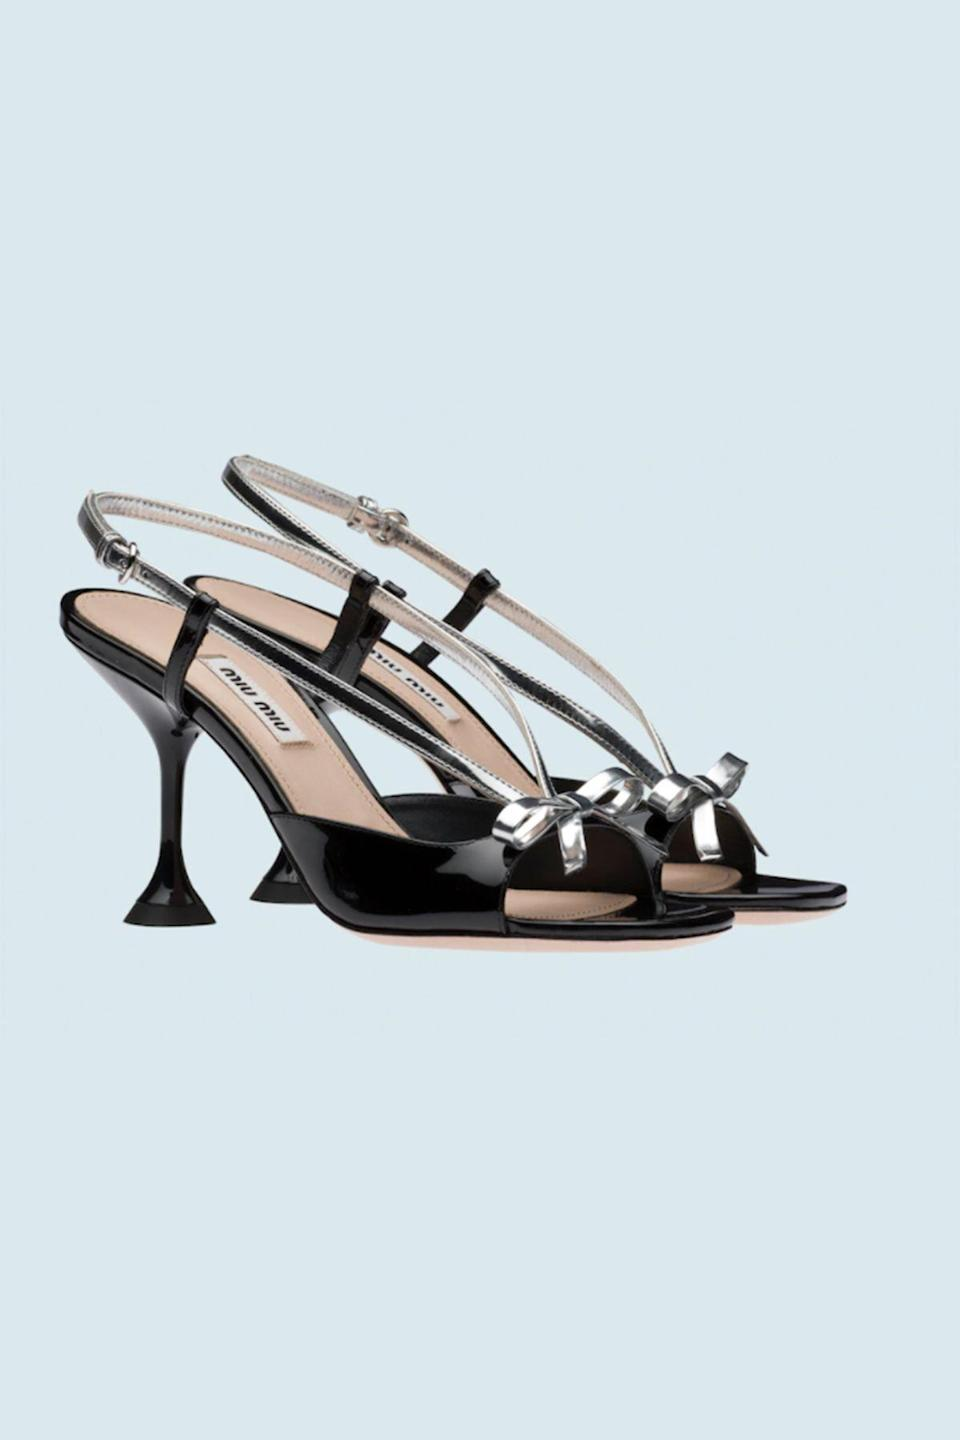 """<p><strong>Miu Miu</strong></p><p>miumiu.com</p><p><strong>$890.00</strong></p><p><a href=""""https://www.miumiu.com/us/en/shoes/sandals/products.patent_leather_and_metallic_technical_fabric_sandals.5X398D_3LE9_F0I89_F_M085.html"""" rel=""""nofollow noopener"""" target=""""_blank"""" data-ylk=""""slk:Shop Now"""" class=""""link rapid-noclick-resp"""">Shop Now</a></p><p>A pyramid heel and patent silver bows jazz up these slingbacks with Great Gatsby-esque flair. </p>"""